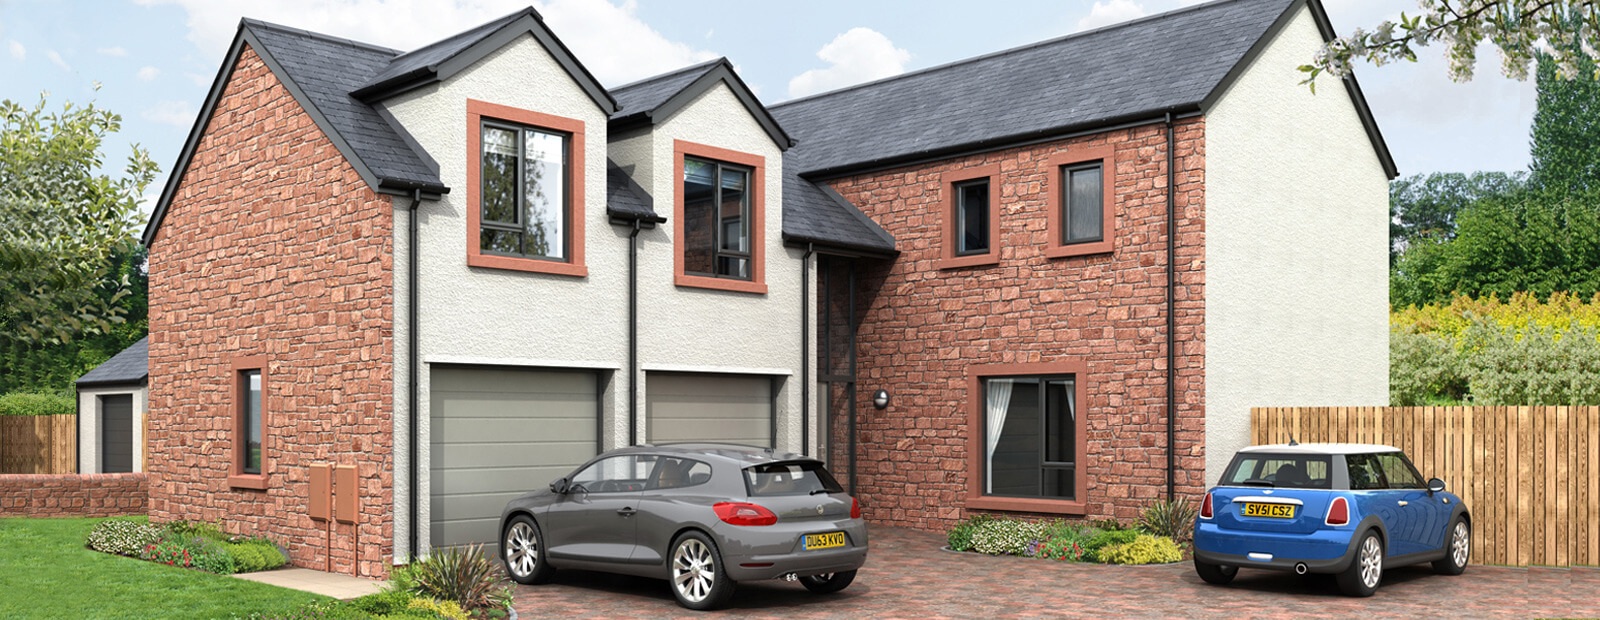 New houses for sale Penrith